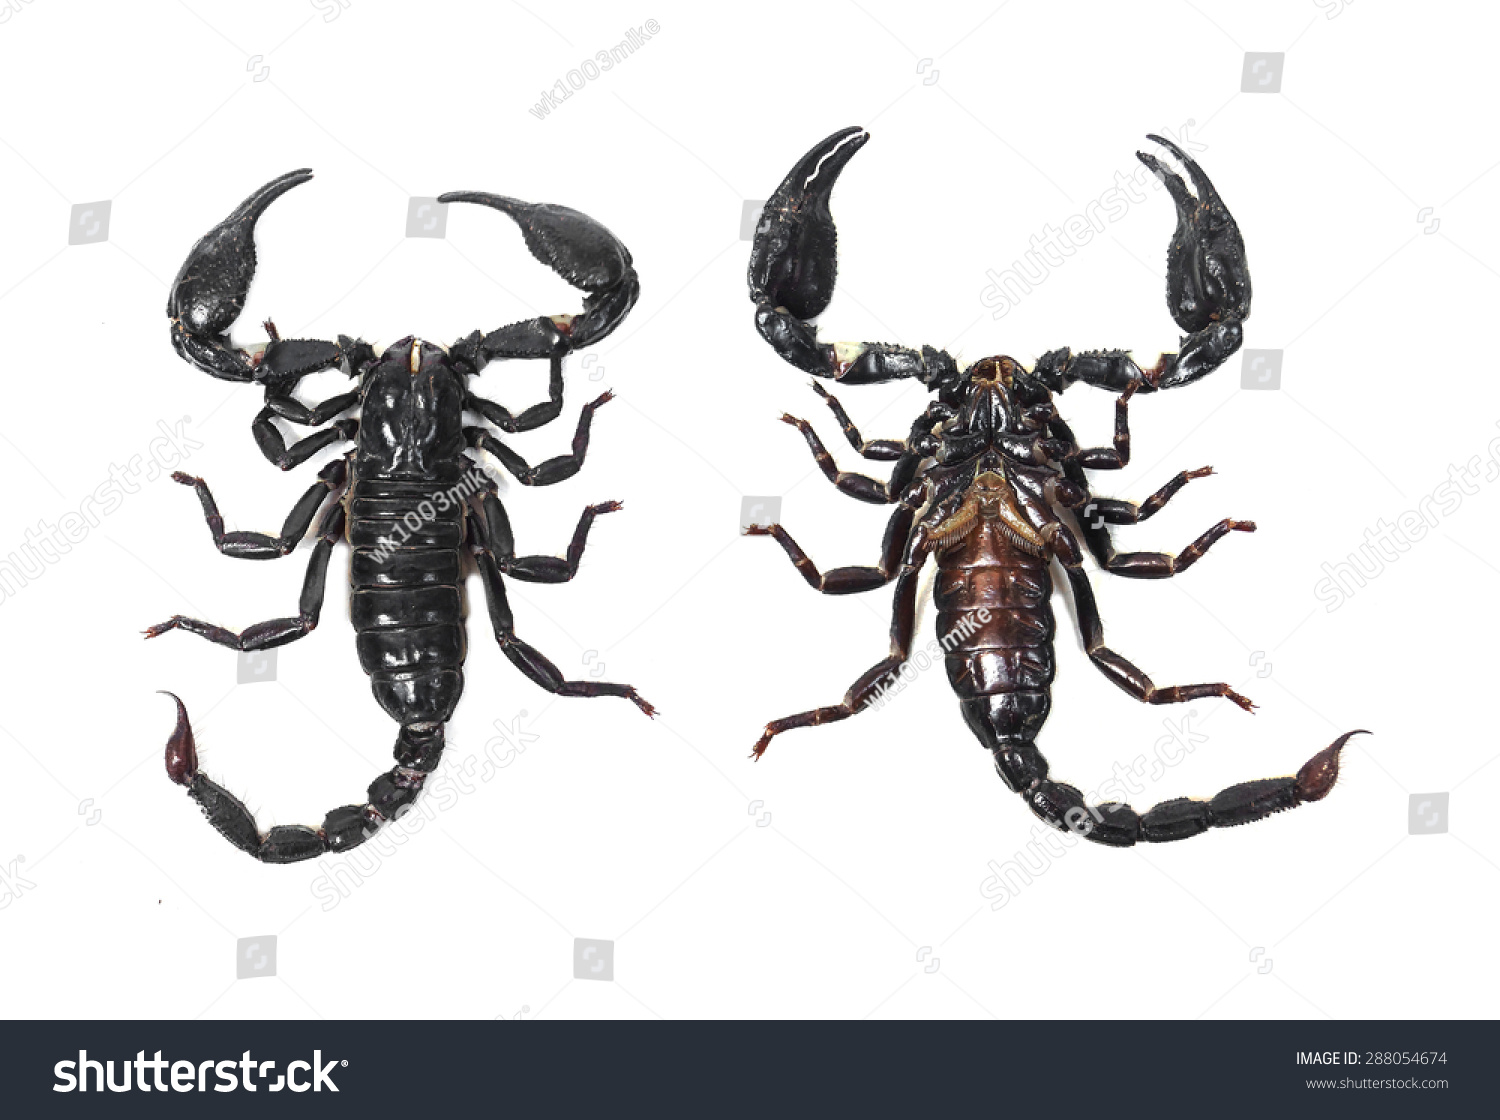 Anatomy Black Scorpion Stock Photo (Edit Now) 288054674 - Shutterstock